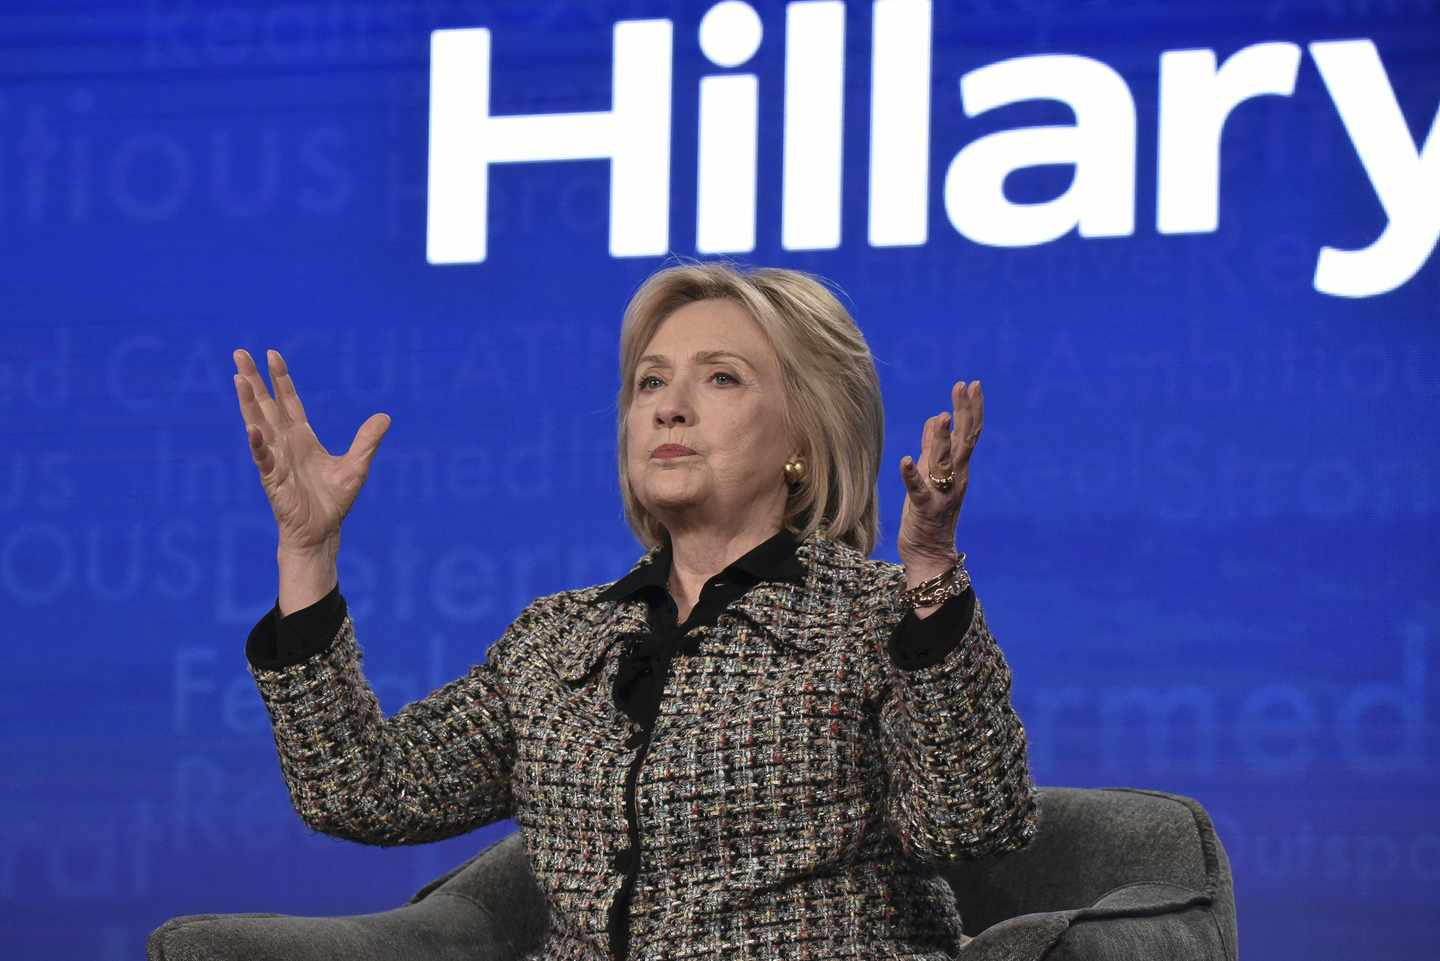 Ready, Dems? Hillary Wants a Starring Role